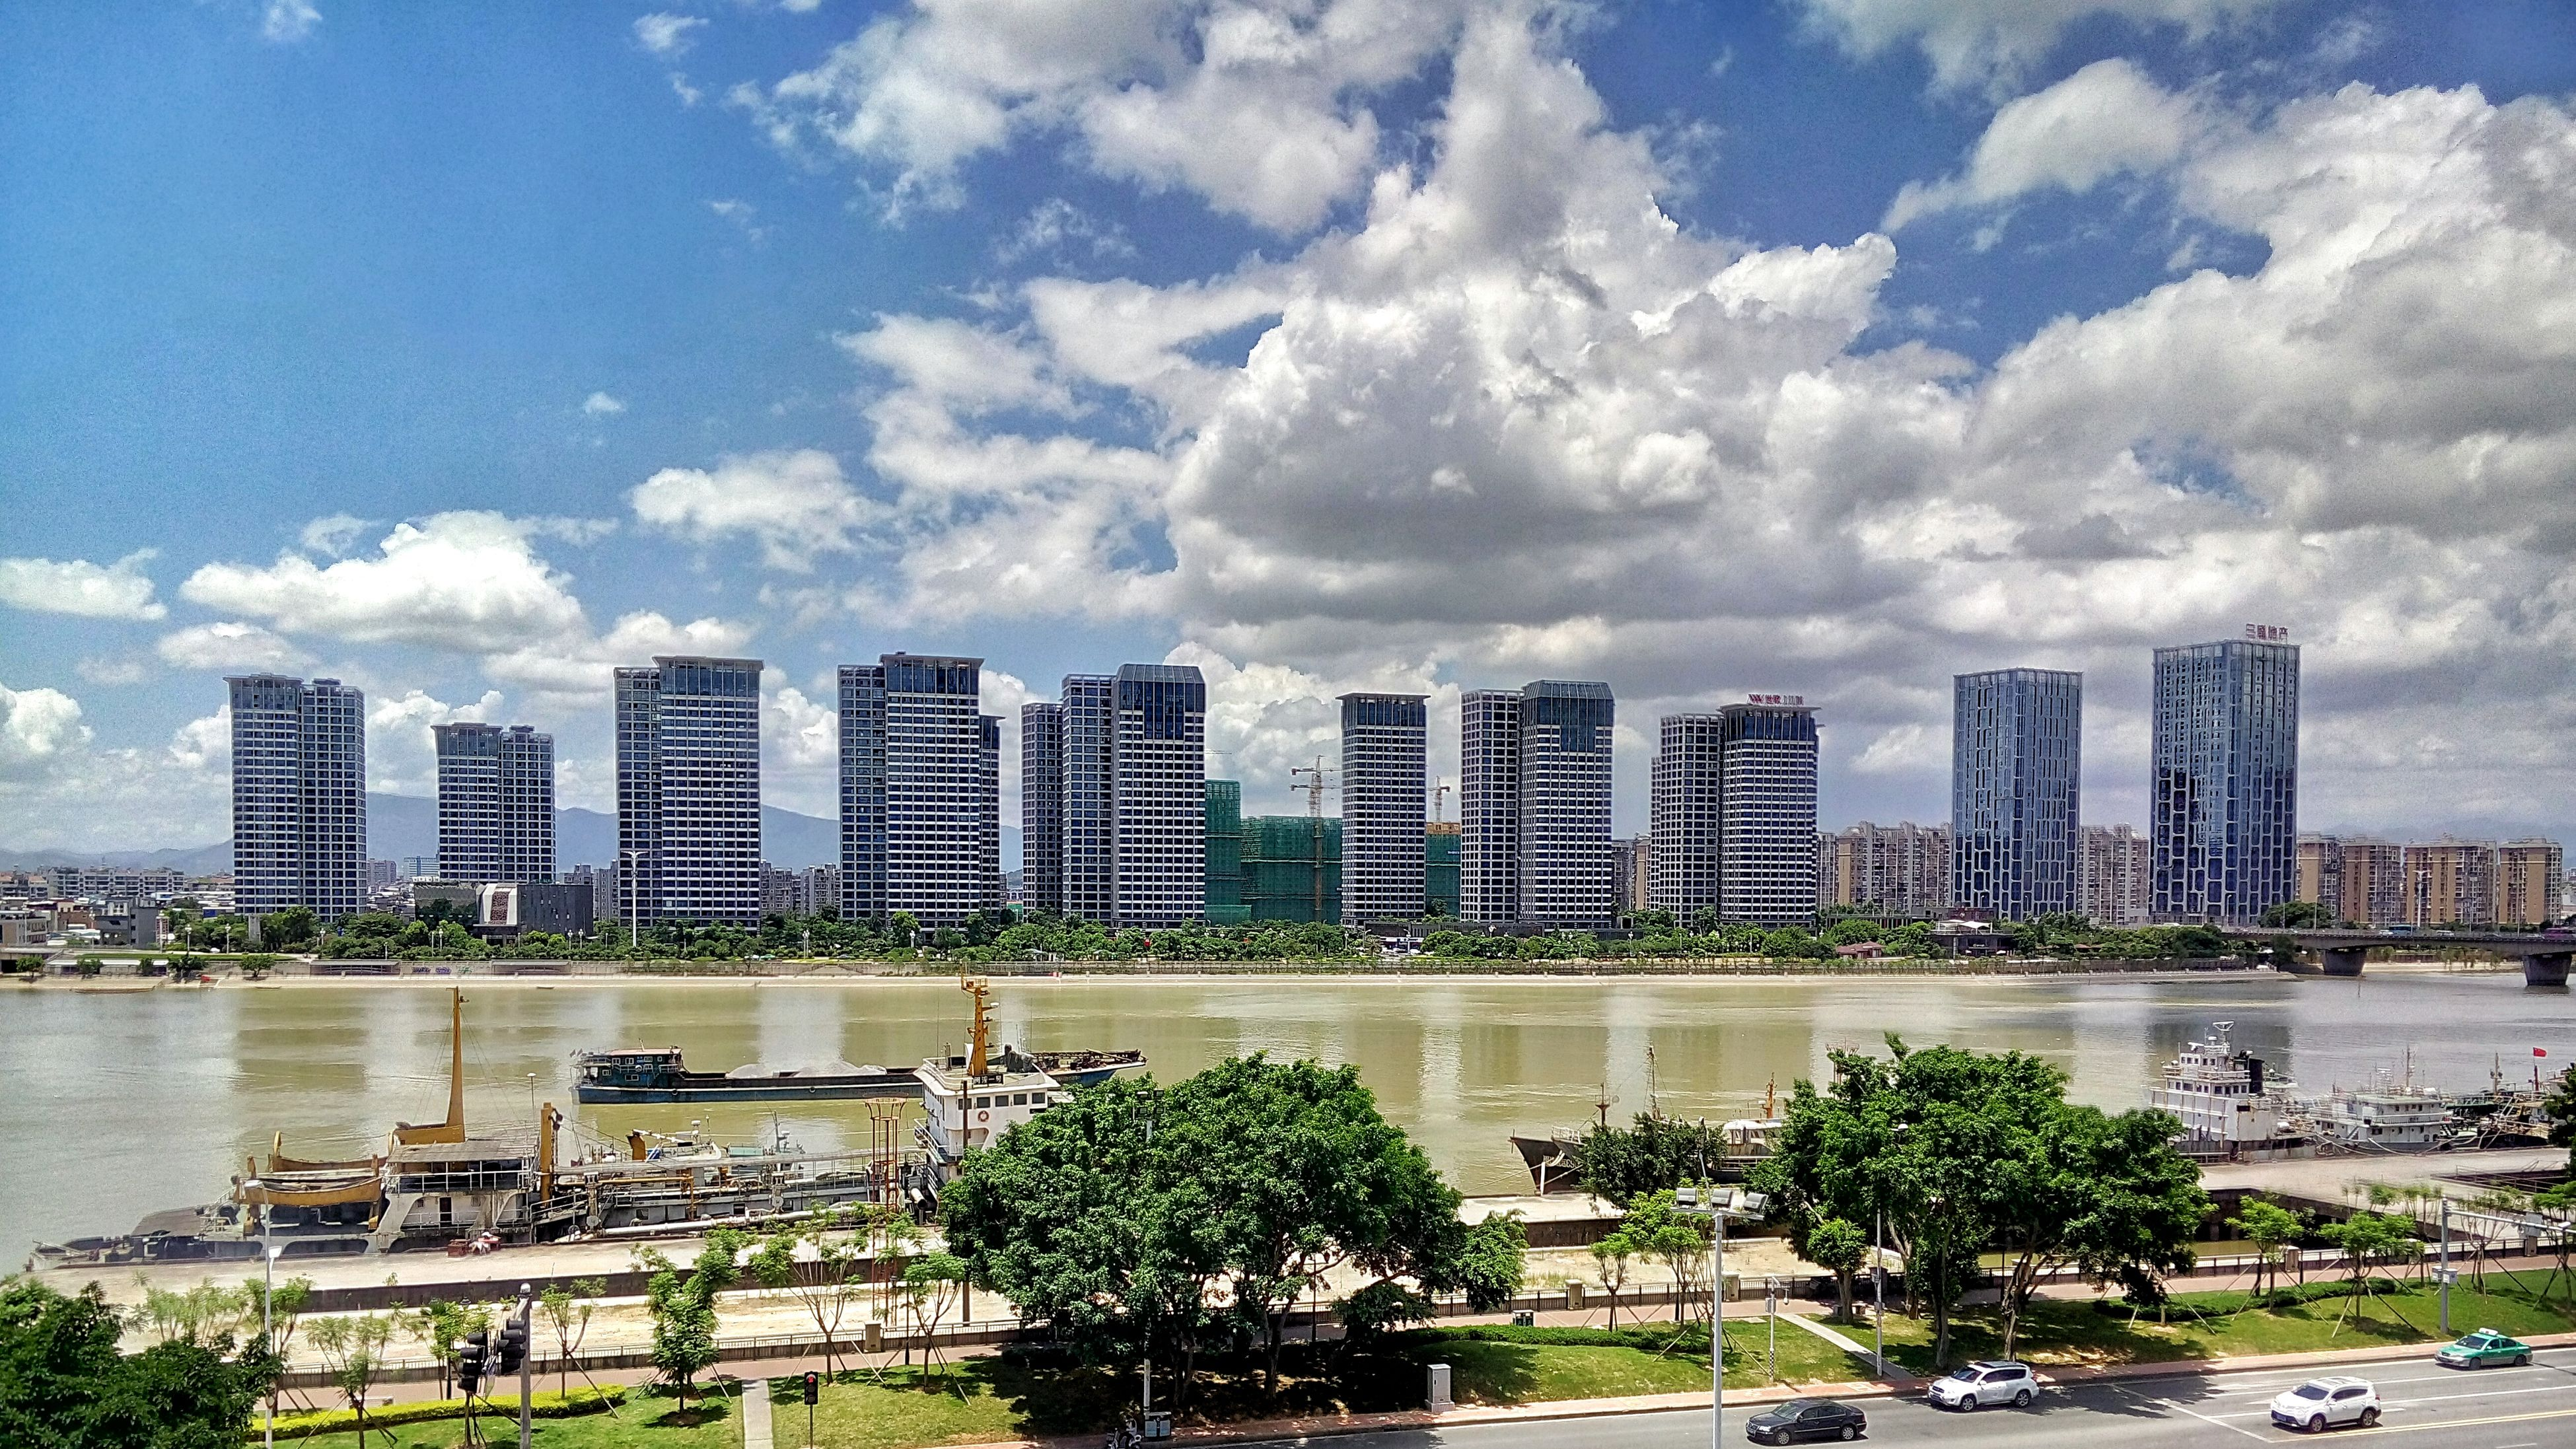 architecture, building exterior, built structure, city, water, sky, skyscraper, modern, waterfront, tall - high, cloud - sky, building story, river, travel destinations, tower, growth, development, reflection, city life, cloud, urban skyline, day, office building, outdoors, wide shot, riverbank, water surface, cloudy